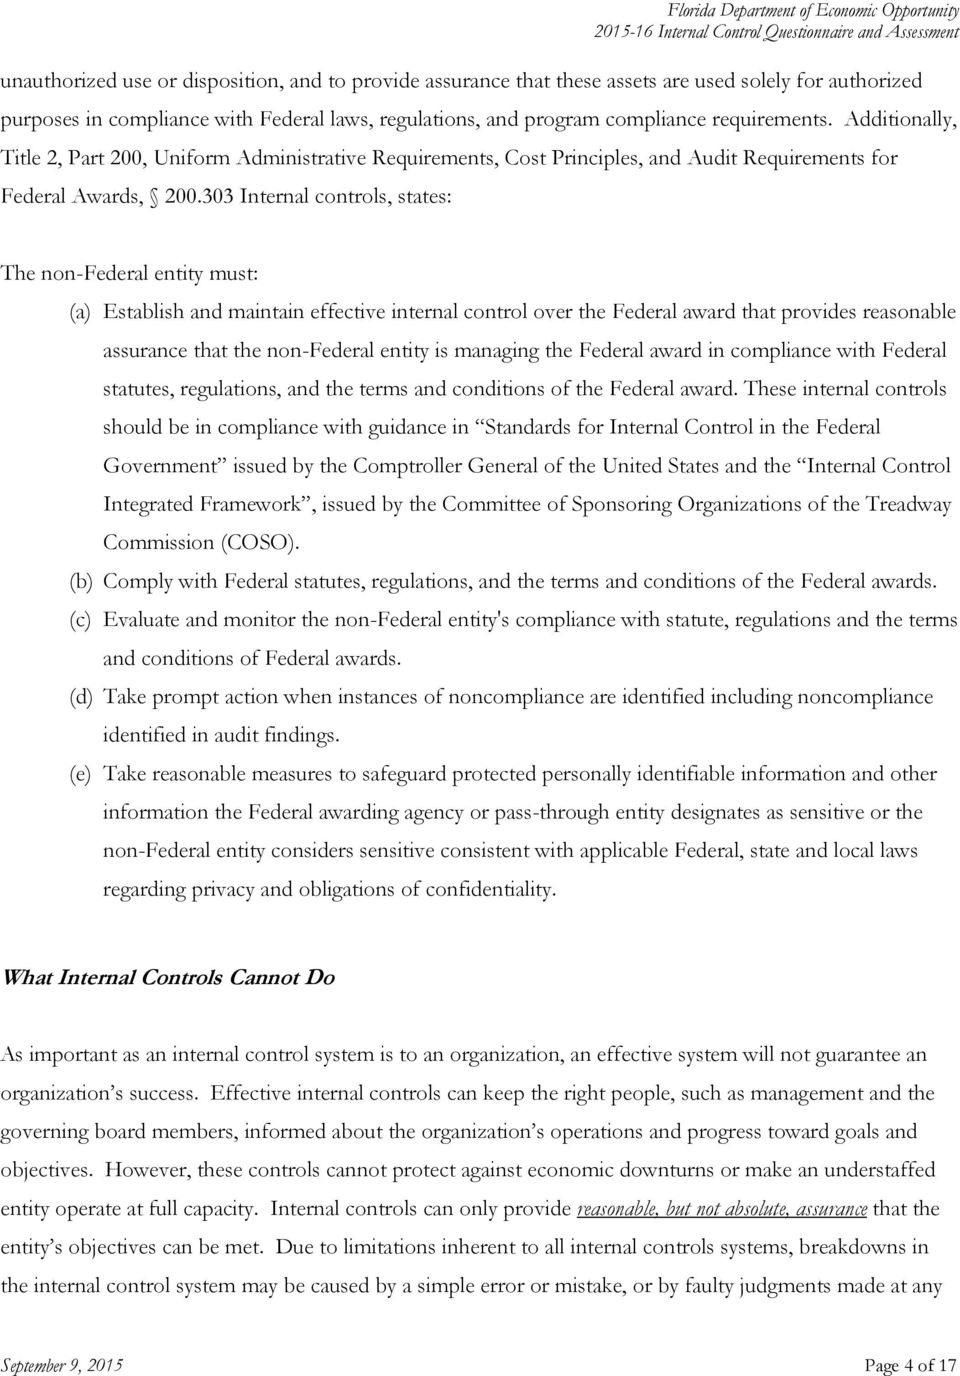 303 Internal controls, states: The non-federal entity must: (a) Establish and maintain effective internal control over the Federal award that provides reasonable assurance that the non-federal entity